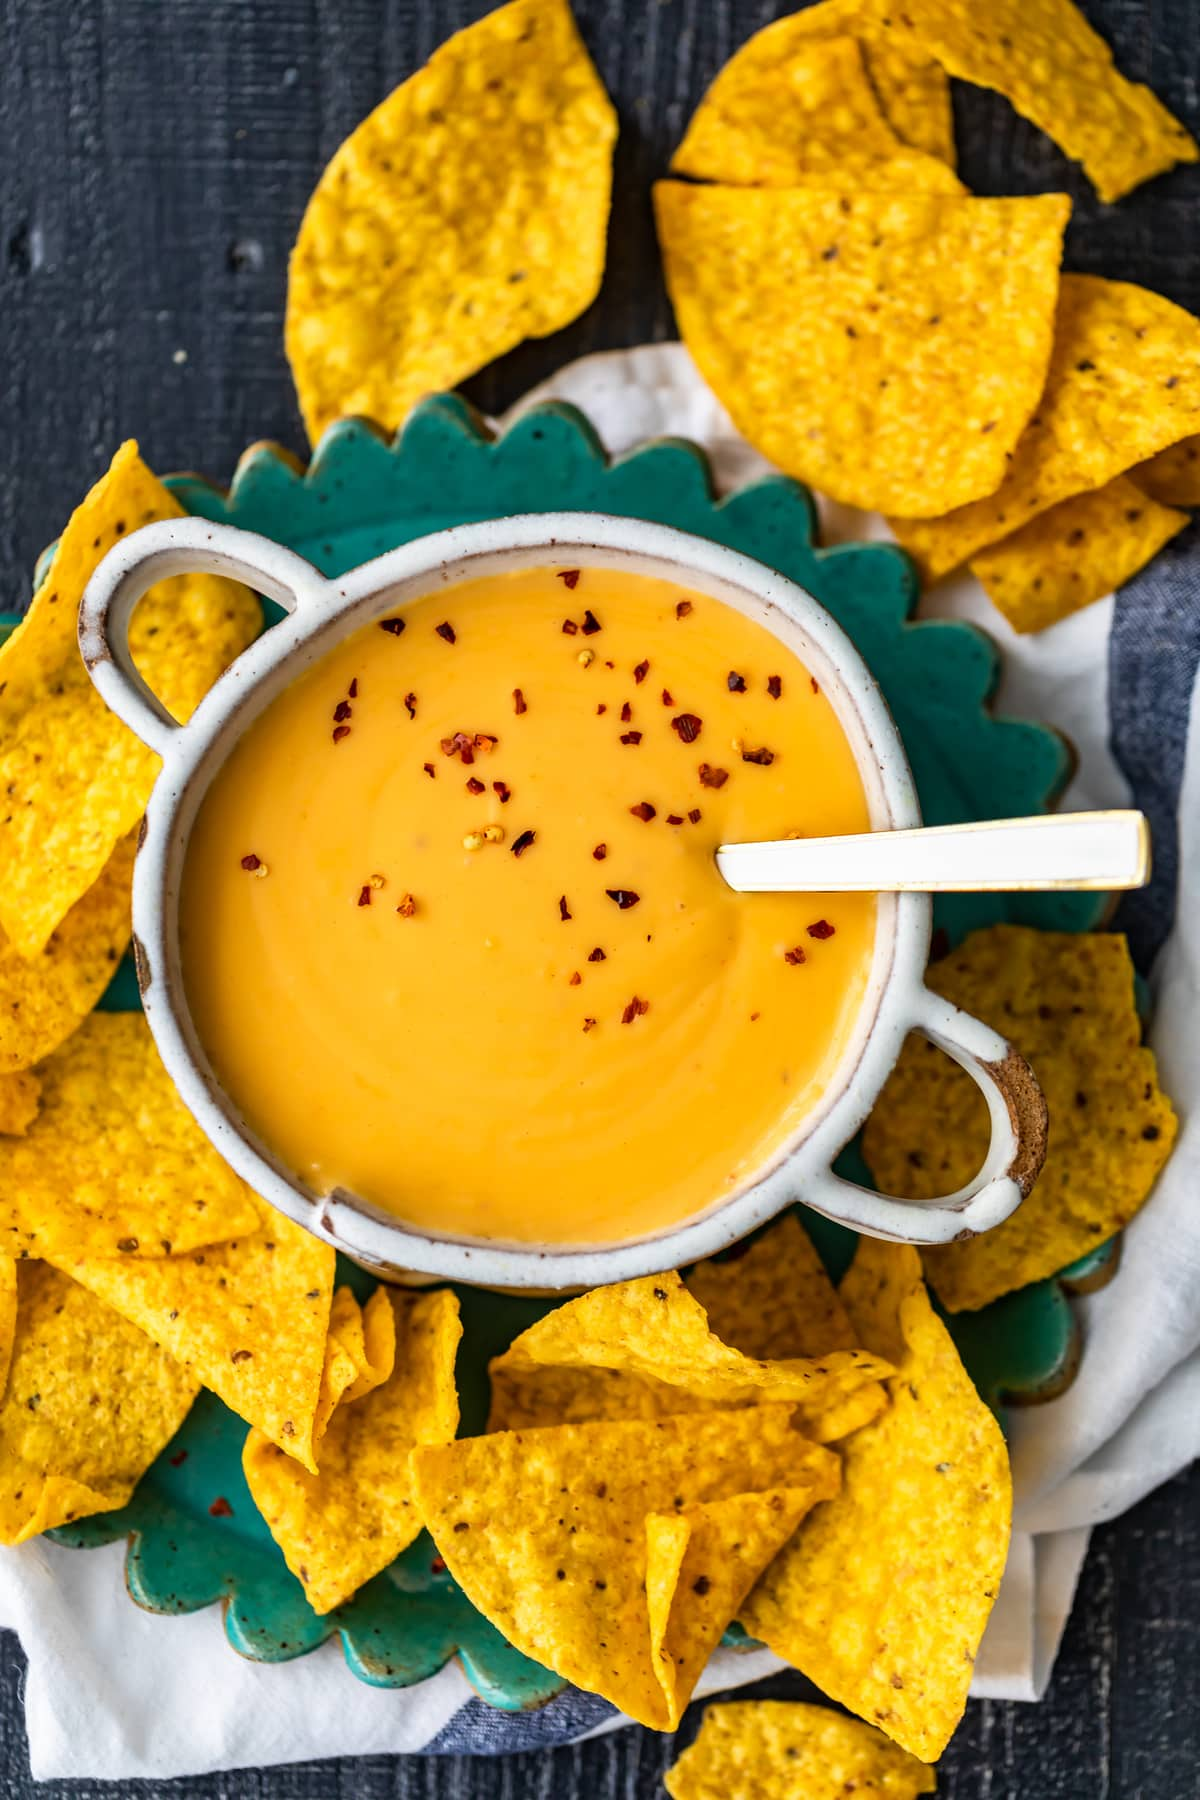 homemade nacho cheese sauce in a bowl, surrounded by tortilla chips